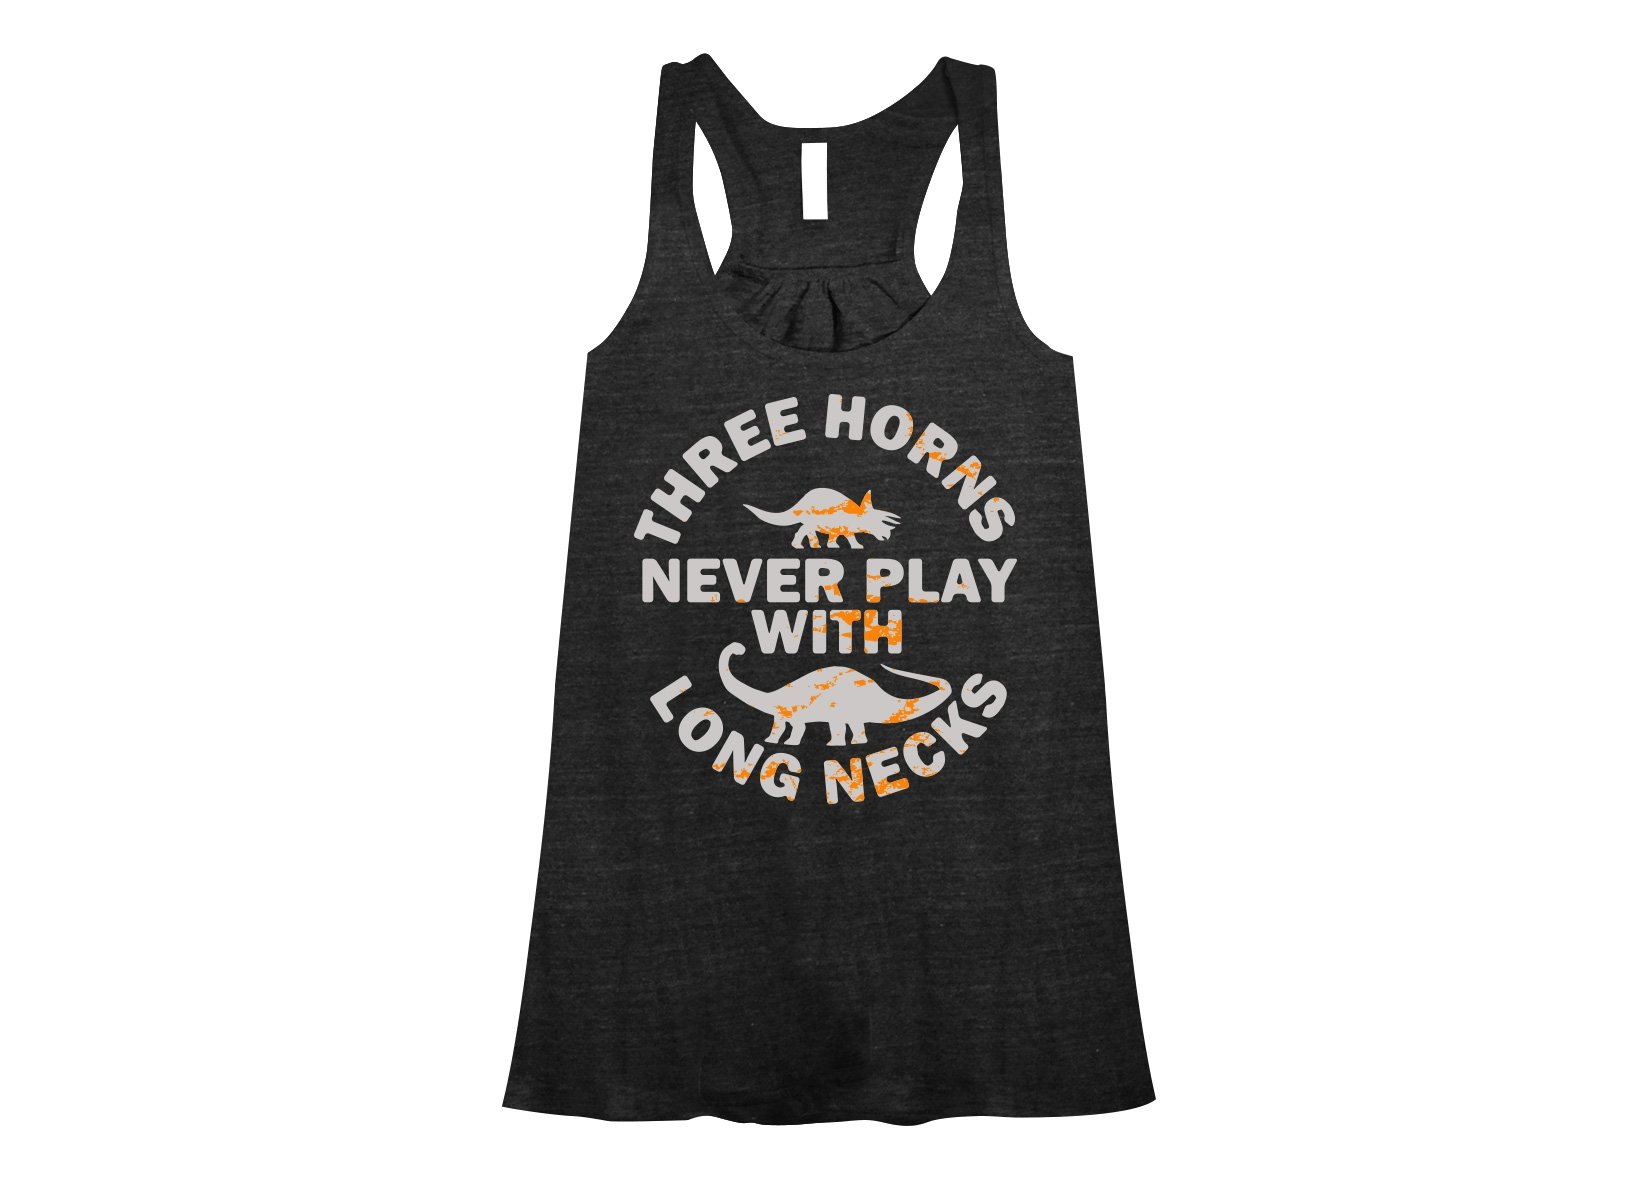 Three Horns Never Play With Long Necks on Womens Tanks T-Shirt